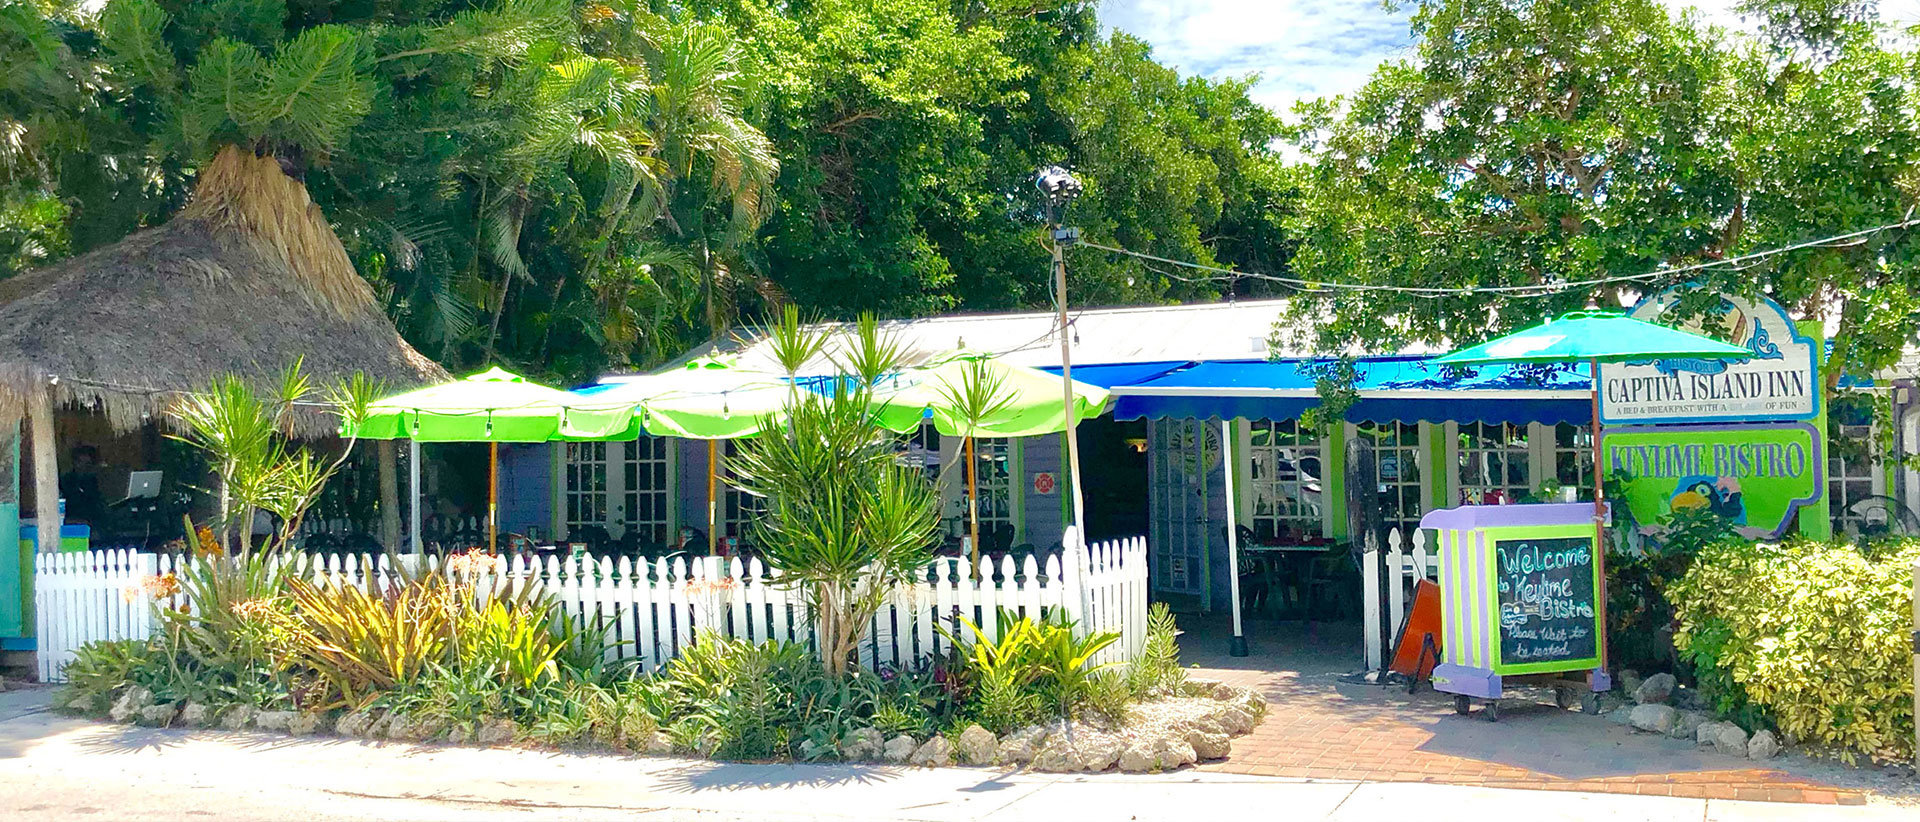 Captiva Island Inn Keylime Bistro Outside